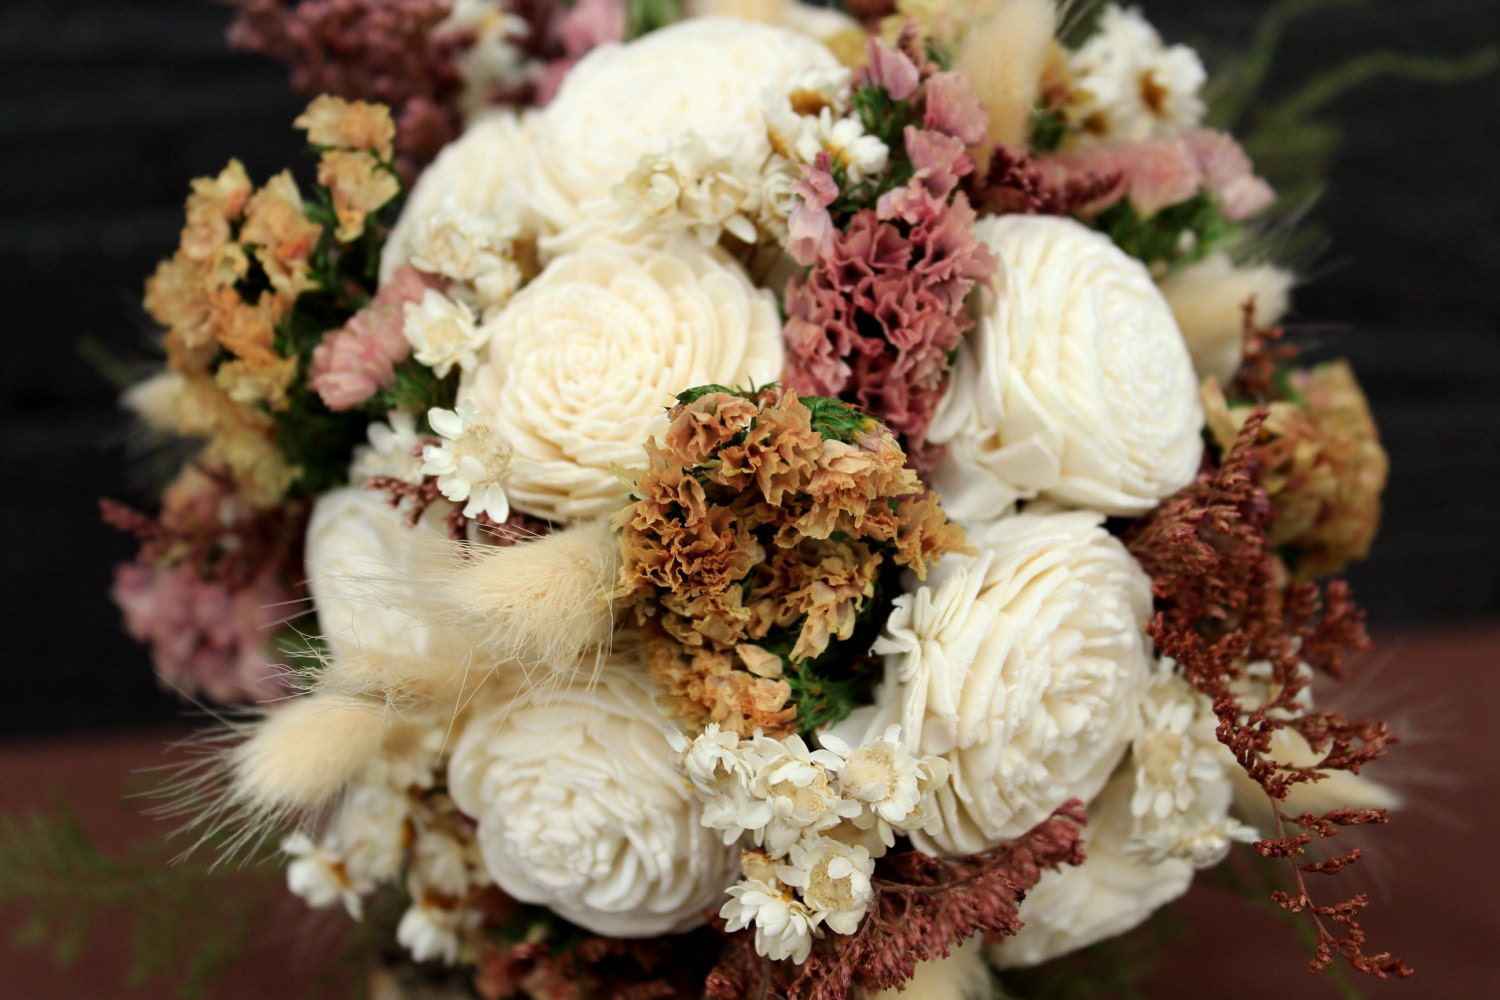 Rustic Wedding Sola Bouquet Bridal Bouquet Shabby Chic